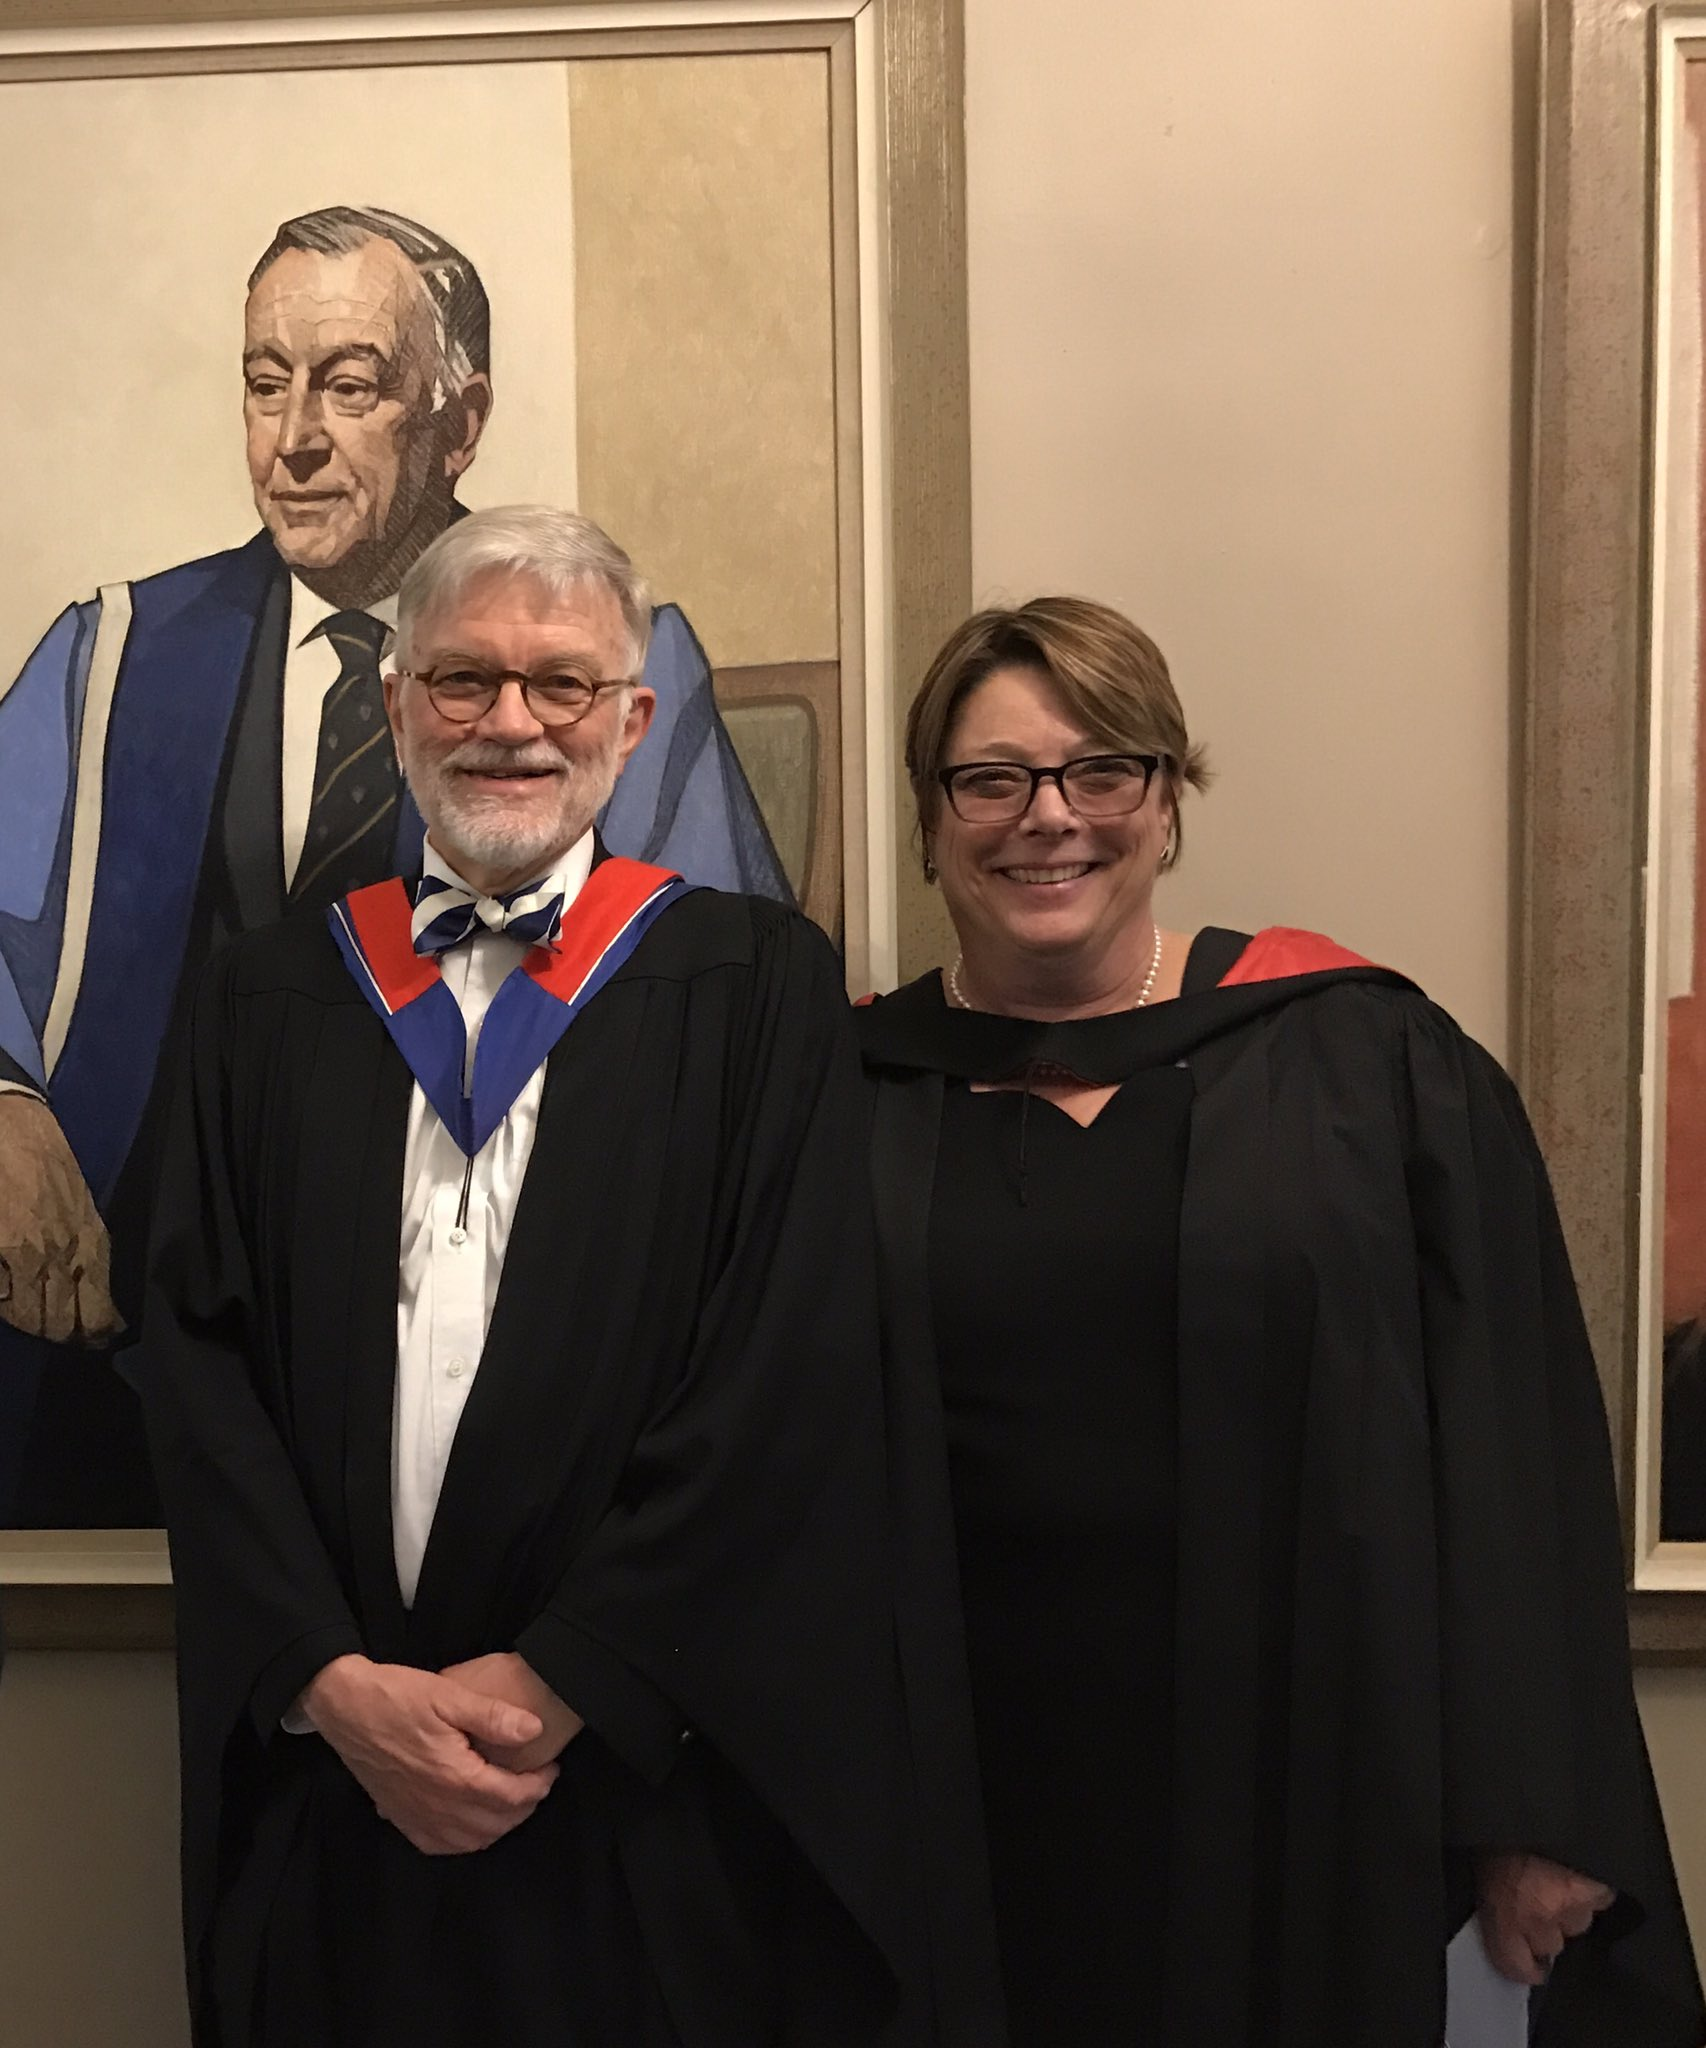 A snazzy pair of profs Drs. David McKnight and Leslie Nickell @uoftmedicine getting ready for wonderful convocation 2017 https://t.co/Thc237ee5K